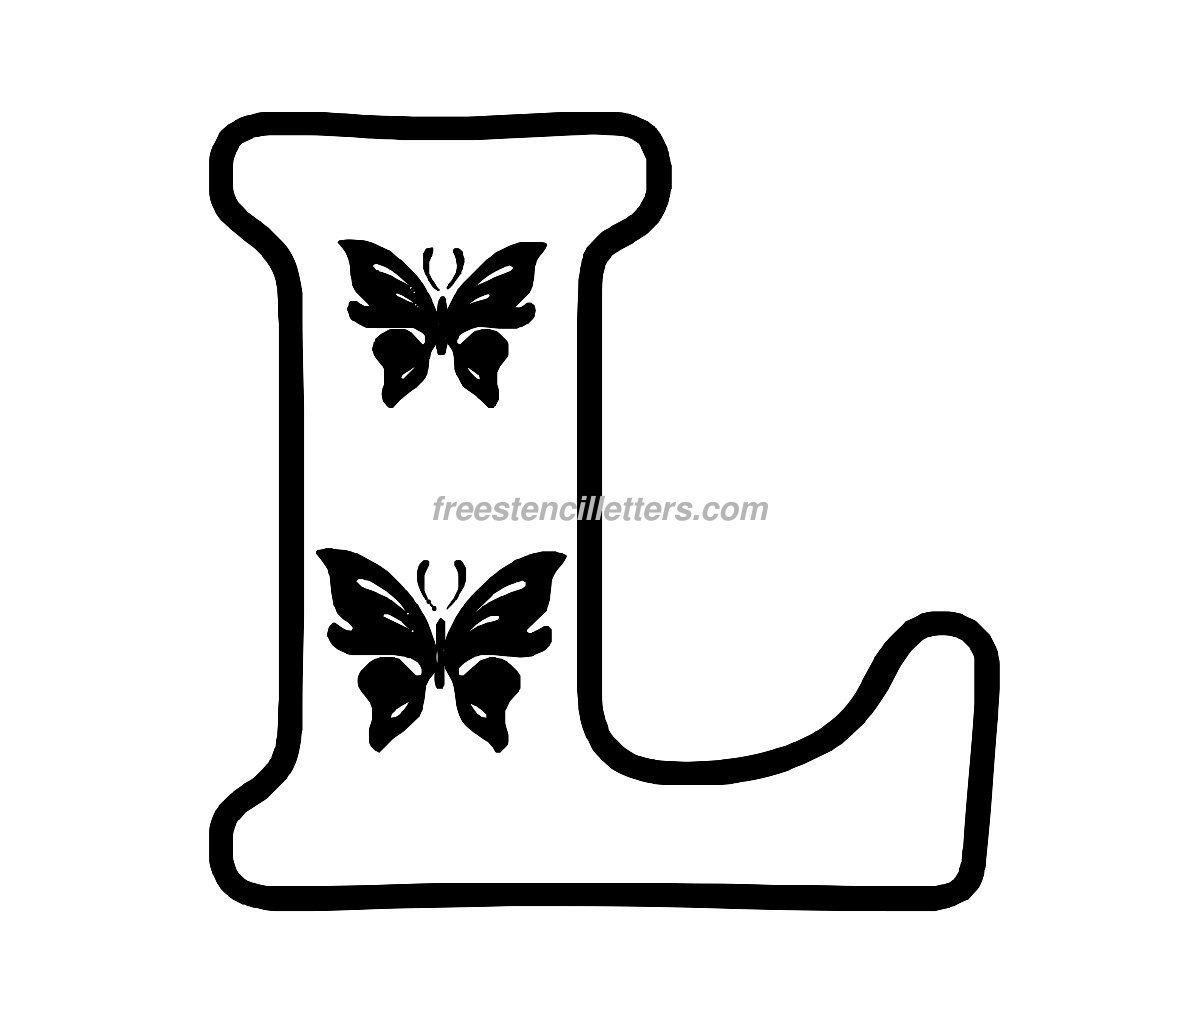 letter stencils printable the gallery for gt free stencil letters to print and cut out 23480